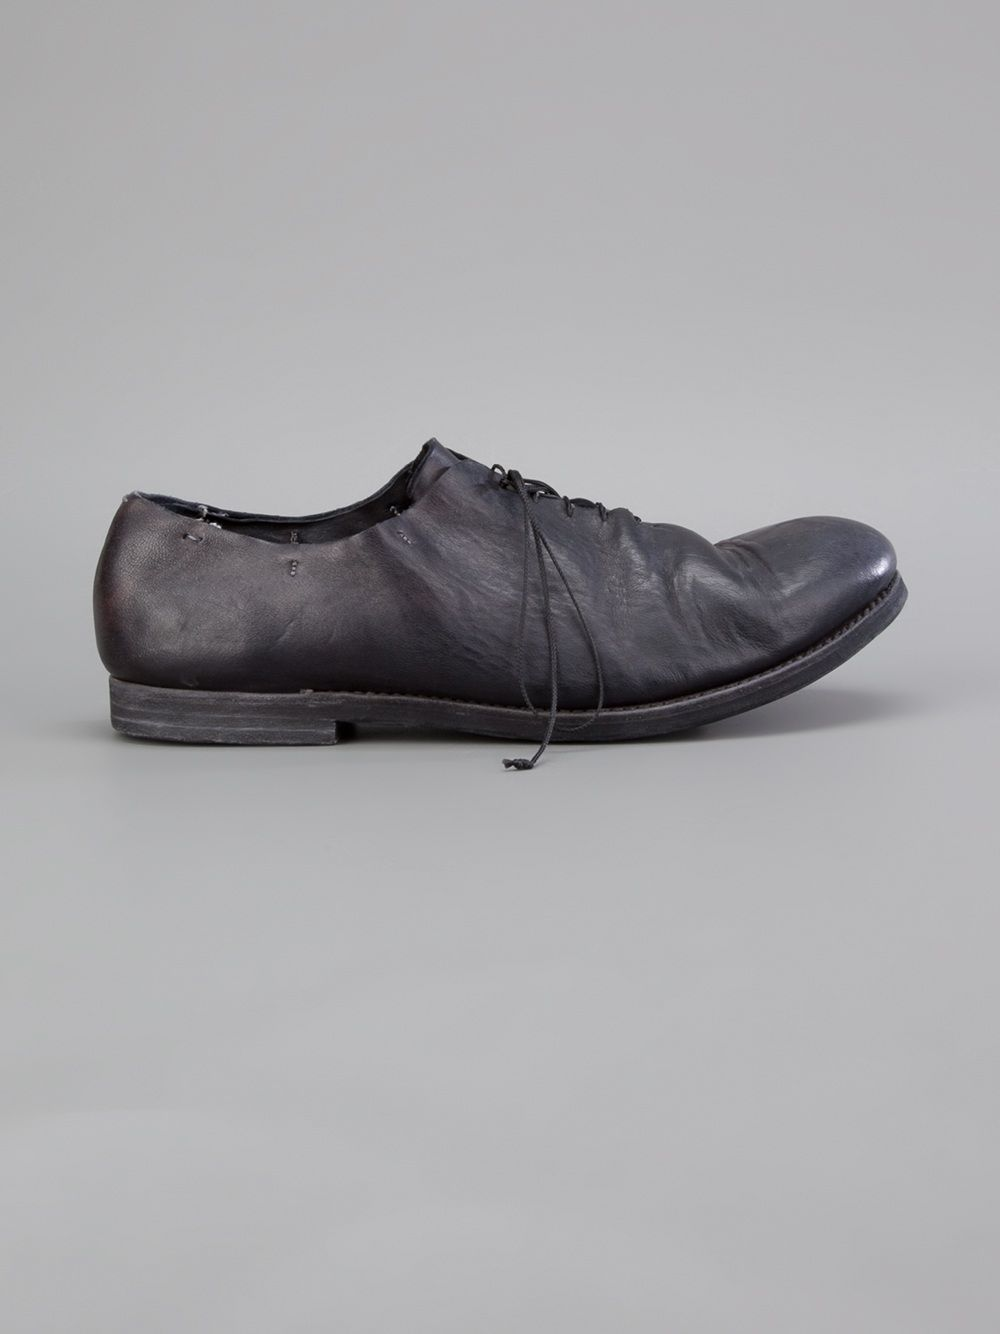 distressed derby shoes - Grey A Diciannoveventitre / Augusta 6Sv9A0